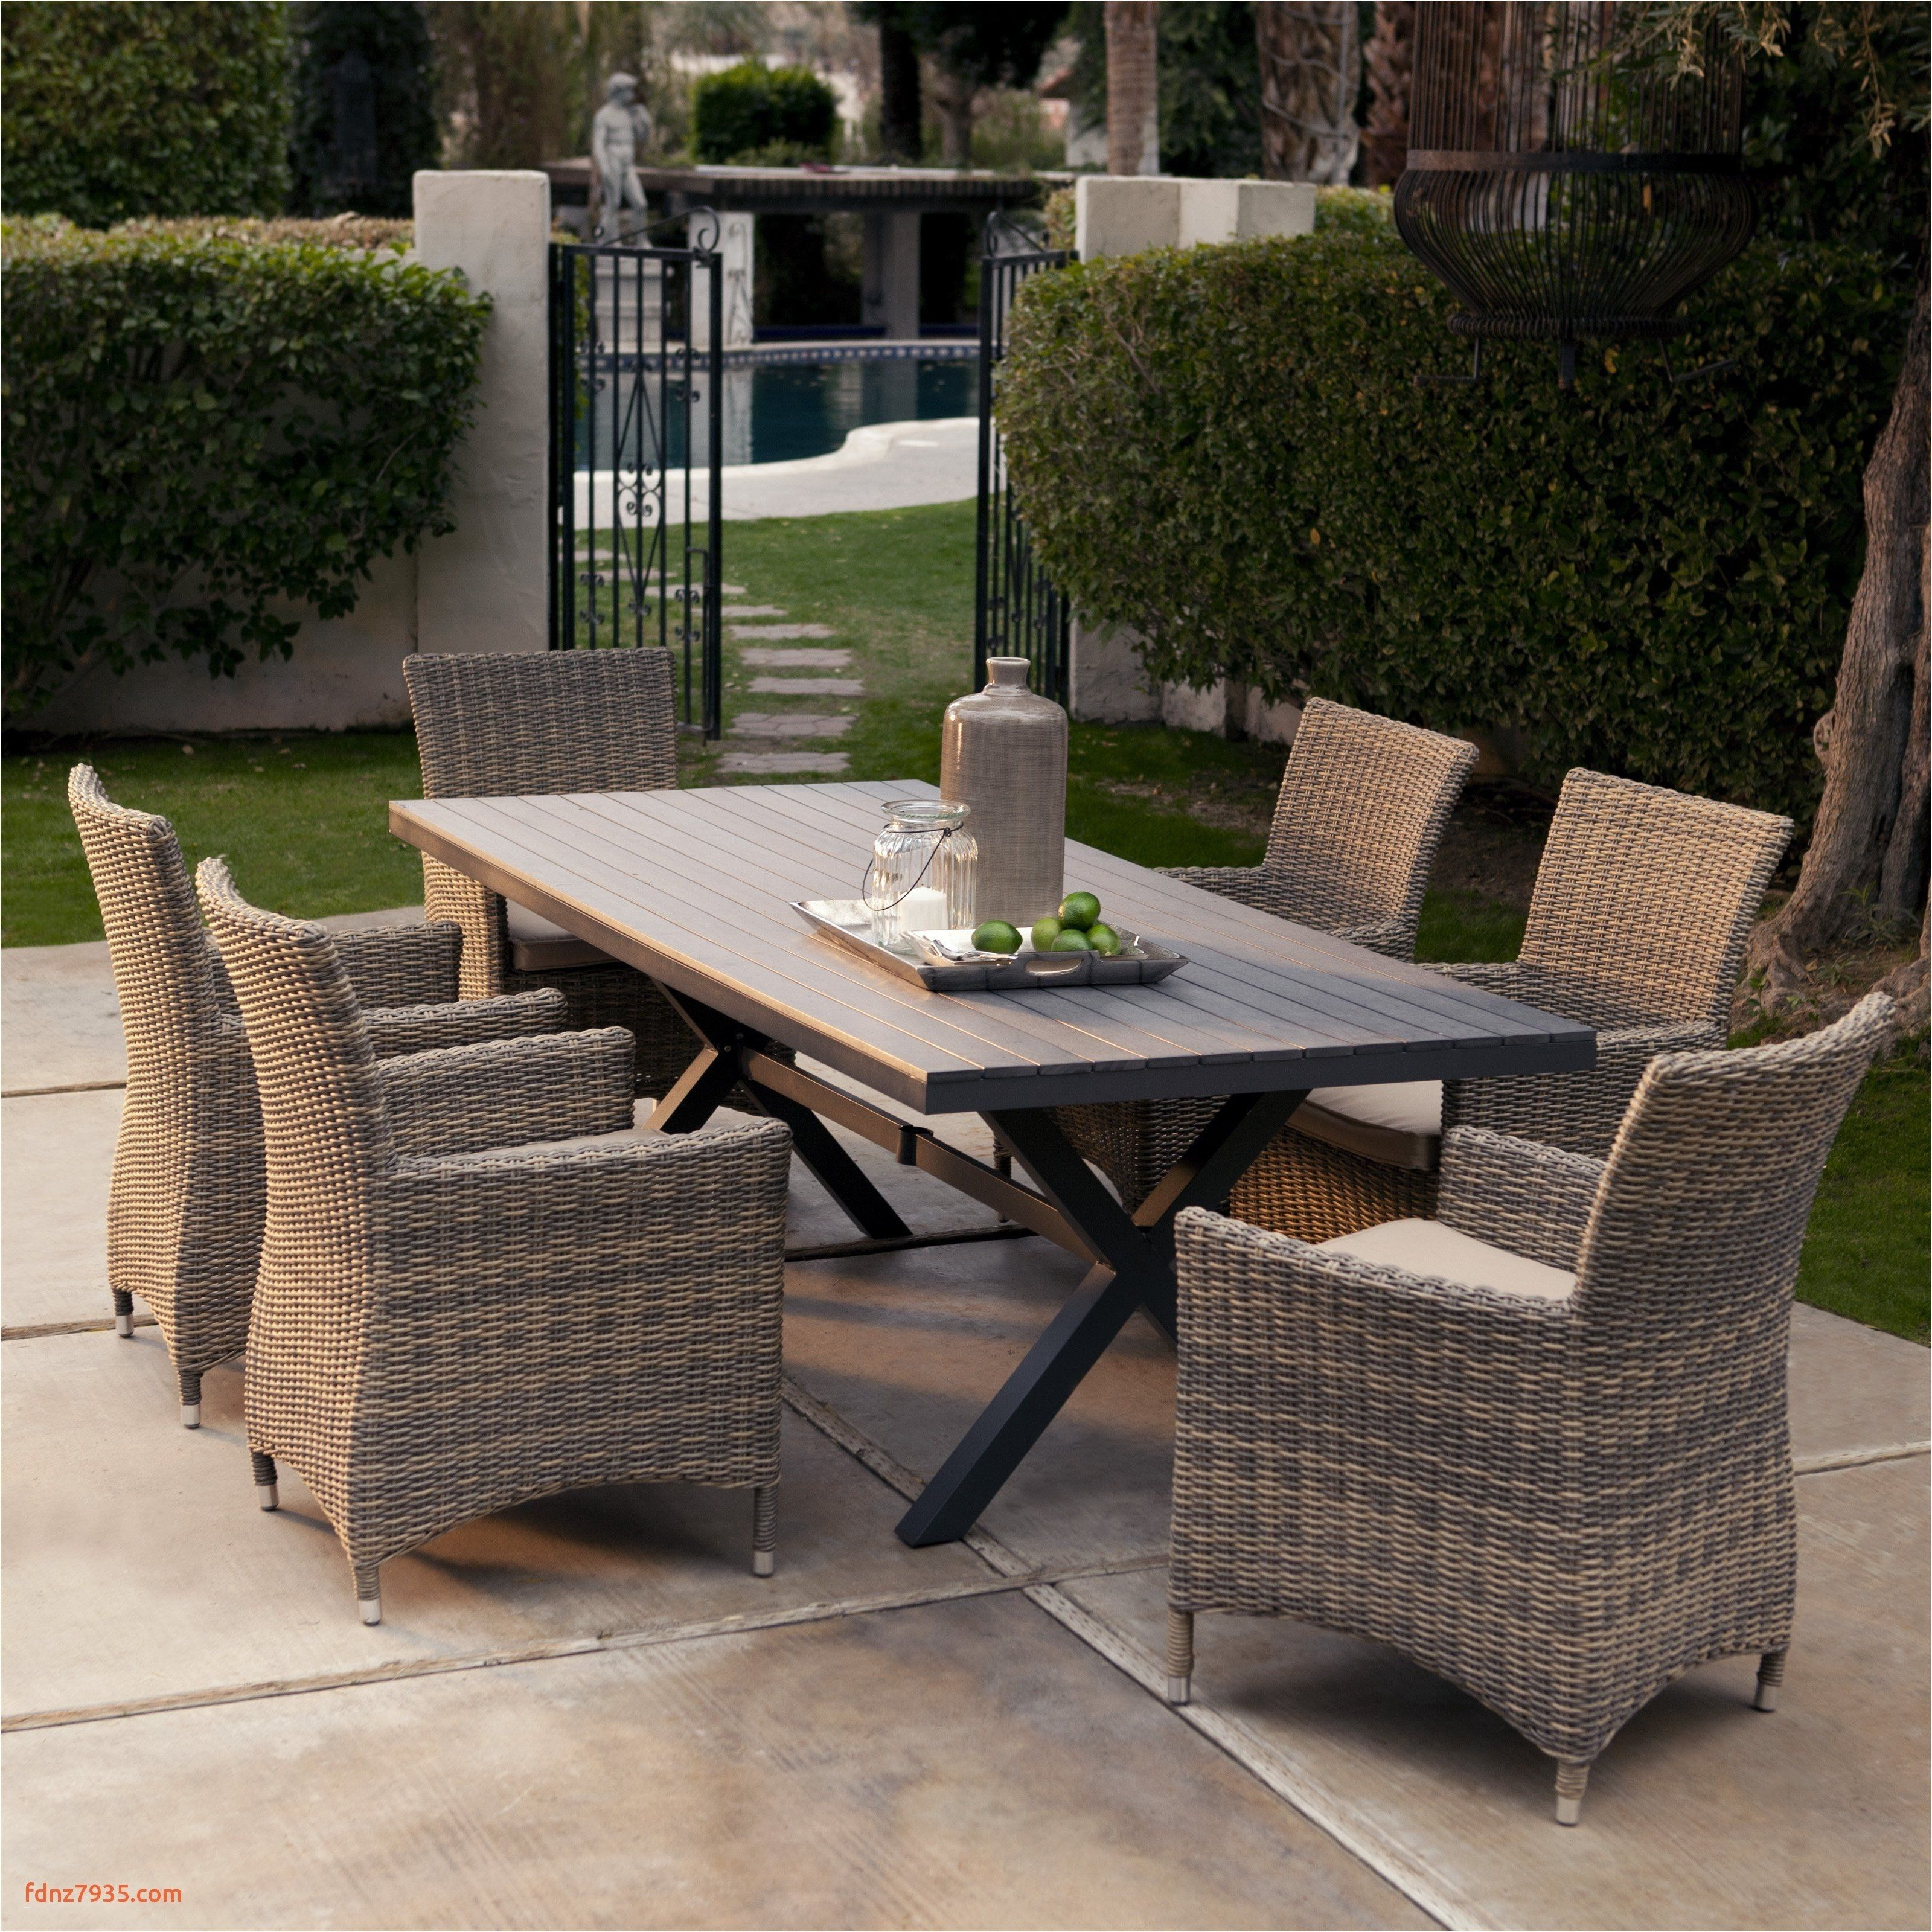 Outdoor Furniture Kansas City Leather Repair Luxe